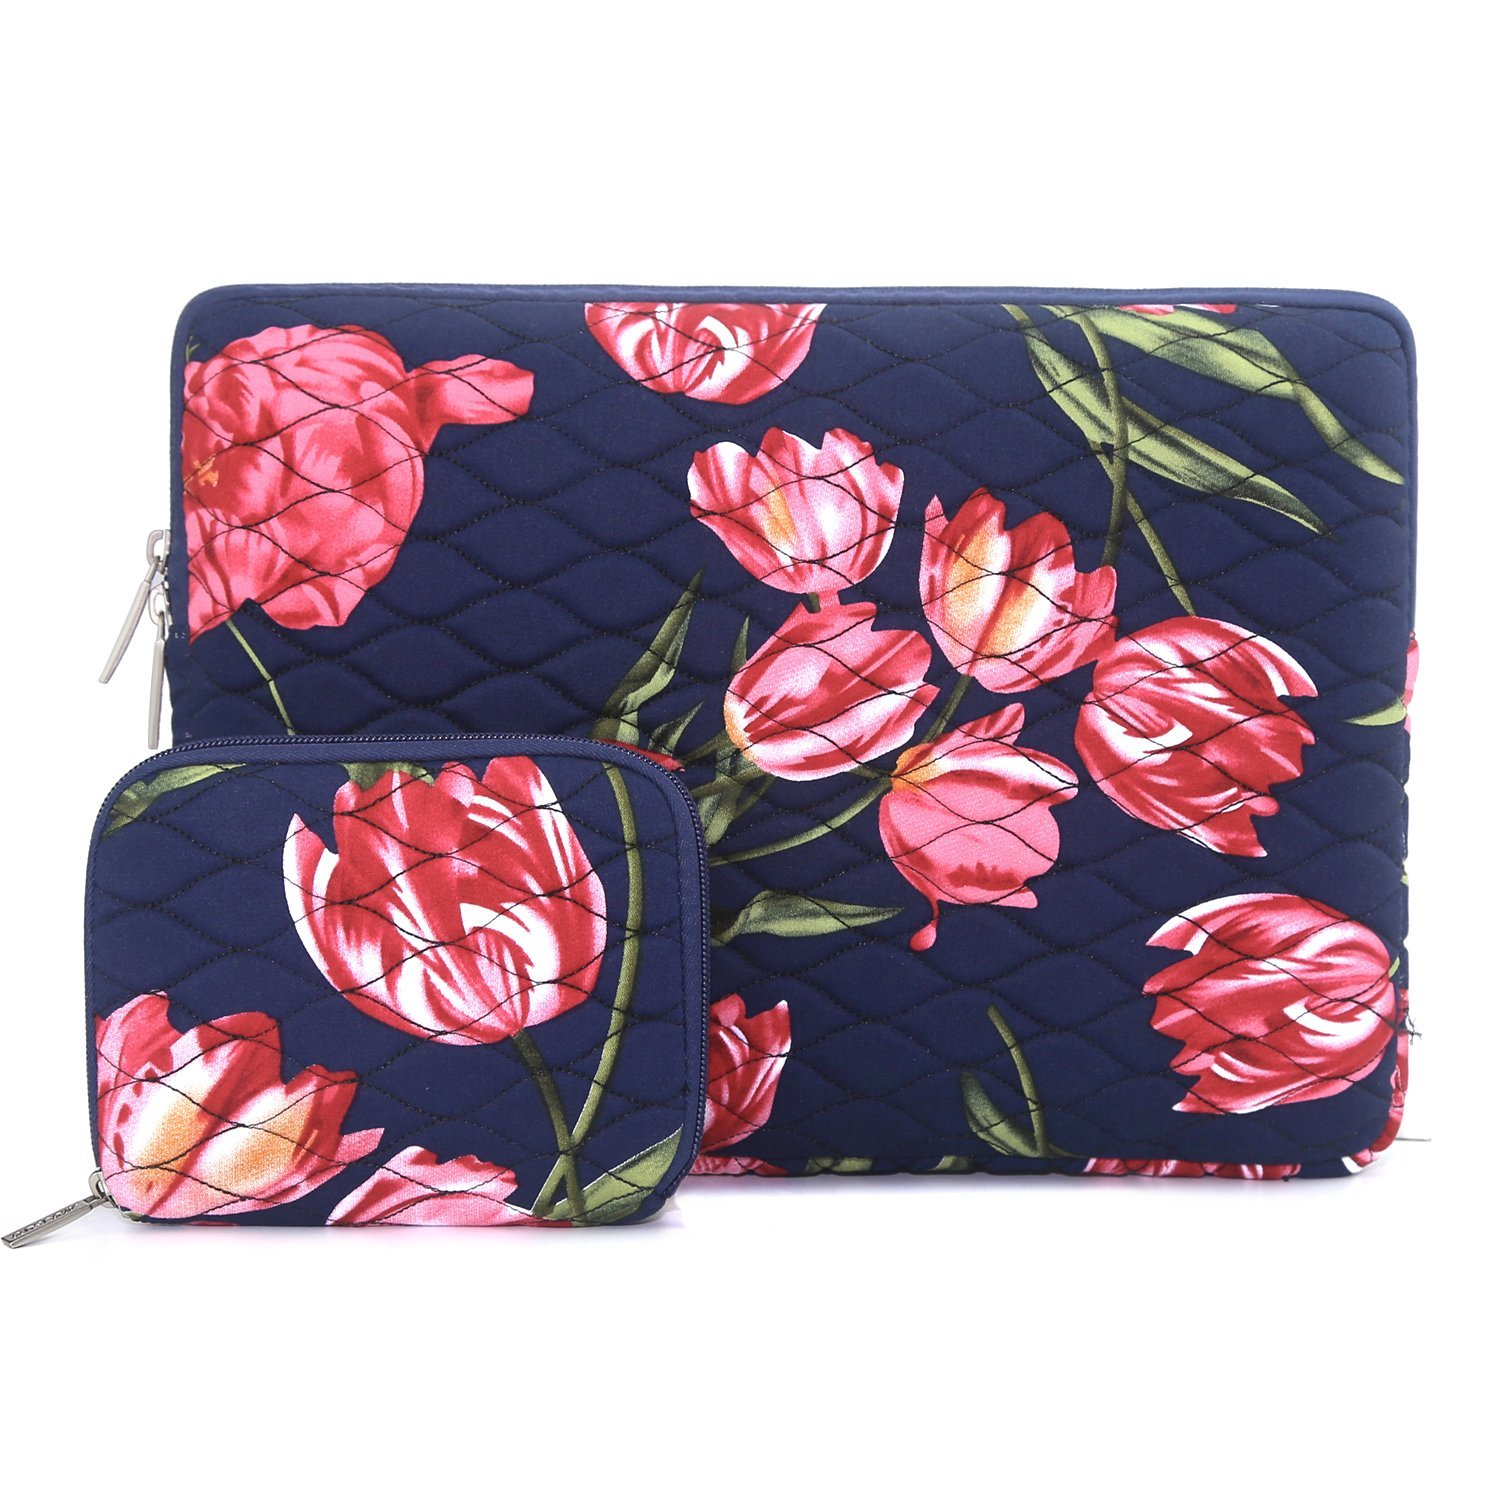 Mosiso Drop-proof Laptop Sleeve Bag for 13-13.3 Inch MacBook Pro, MacBook Air, Notebook Computer with Small Case, 360?Protective Shockproof Spill-Resistant Canvas Ripple Pattern Tablet Cover, Tulip